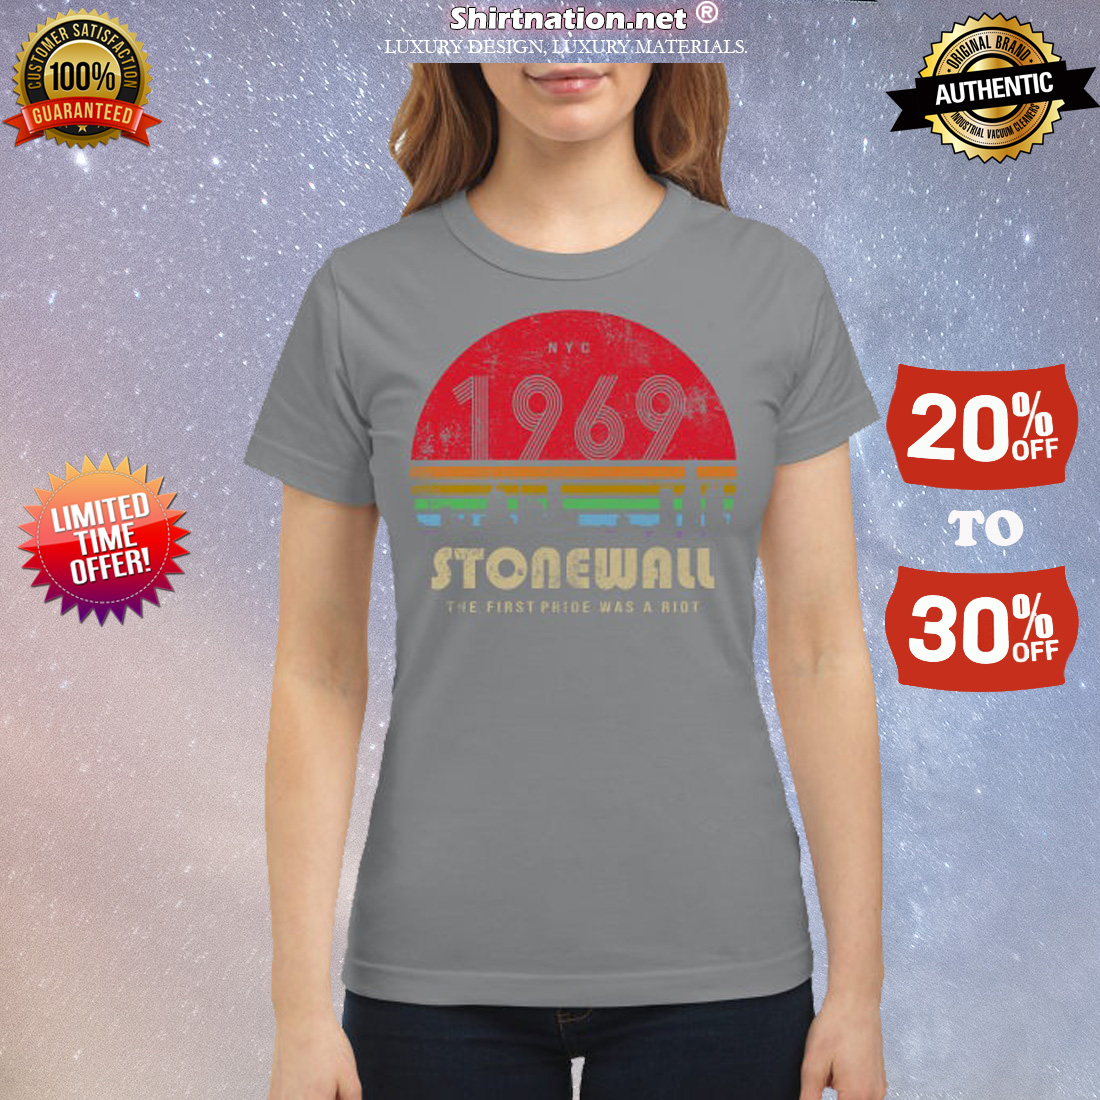 NYC 1969 Stonewall the first pride was a Riot classic shirt